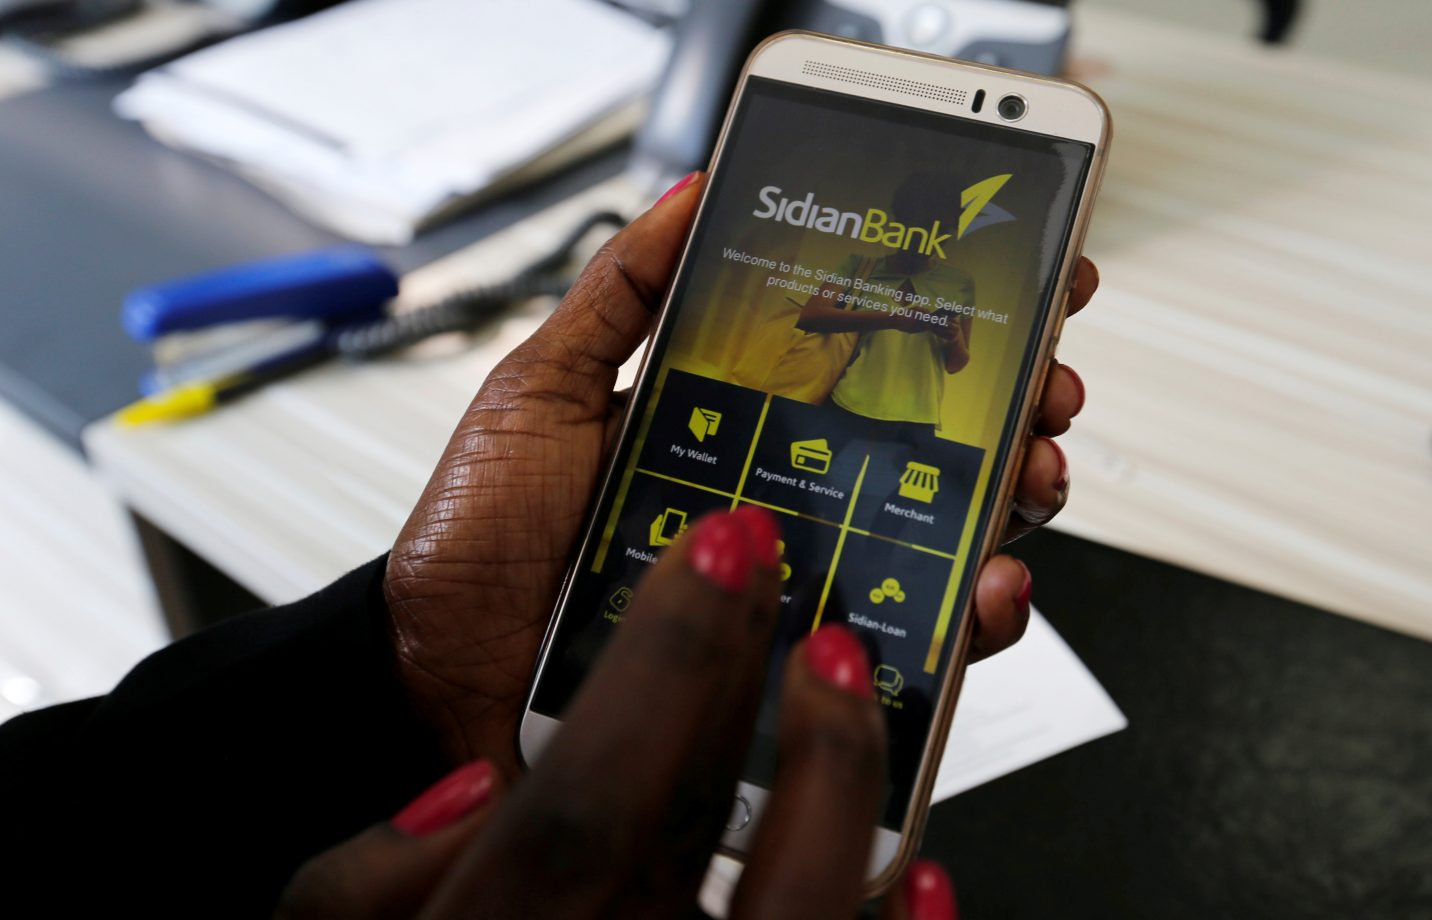 African women use more mobile data compared to their male counterparts.